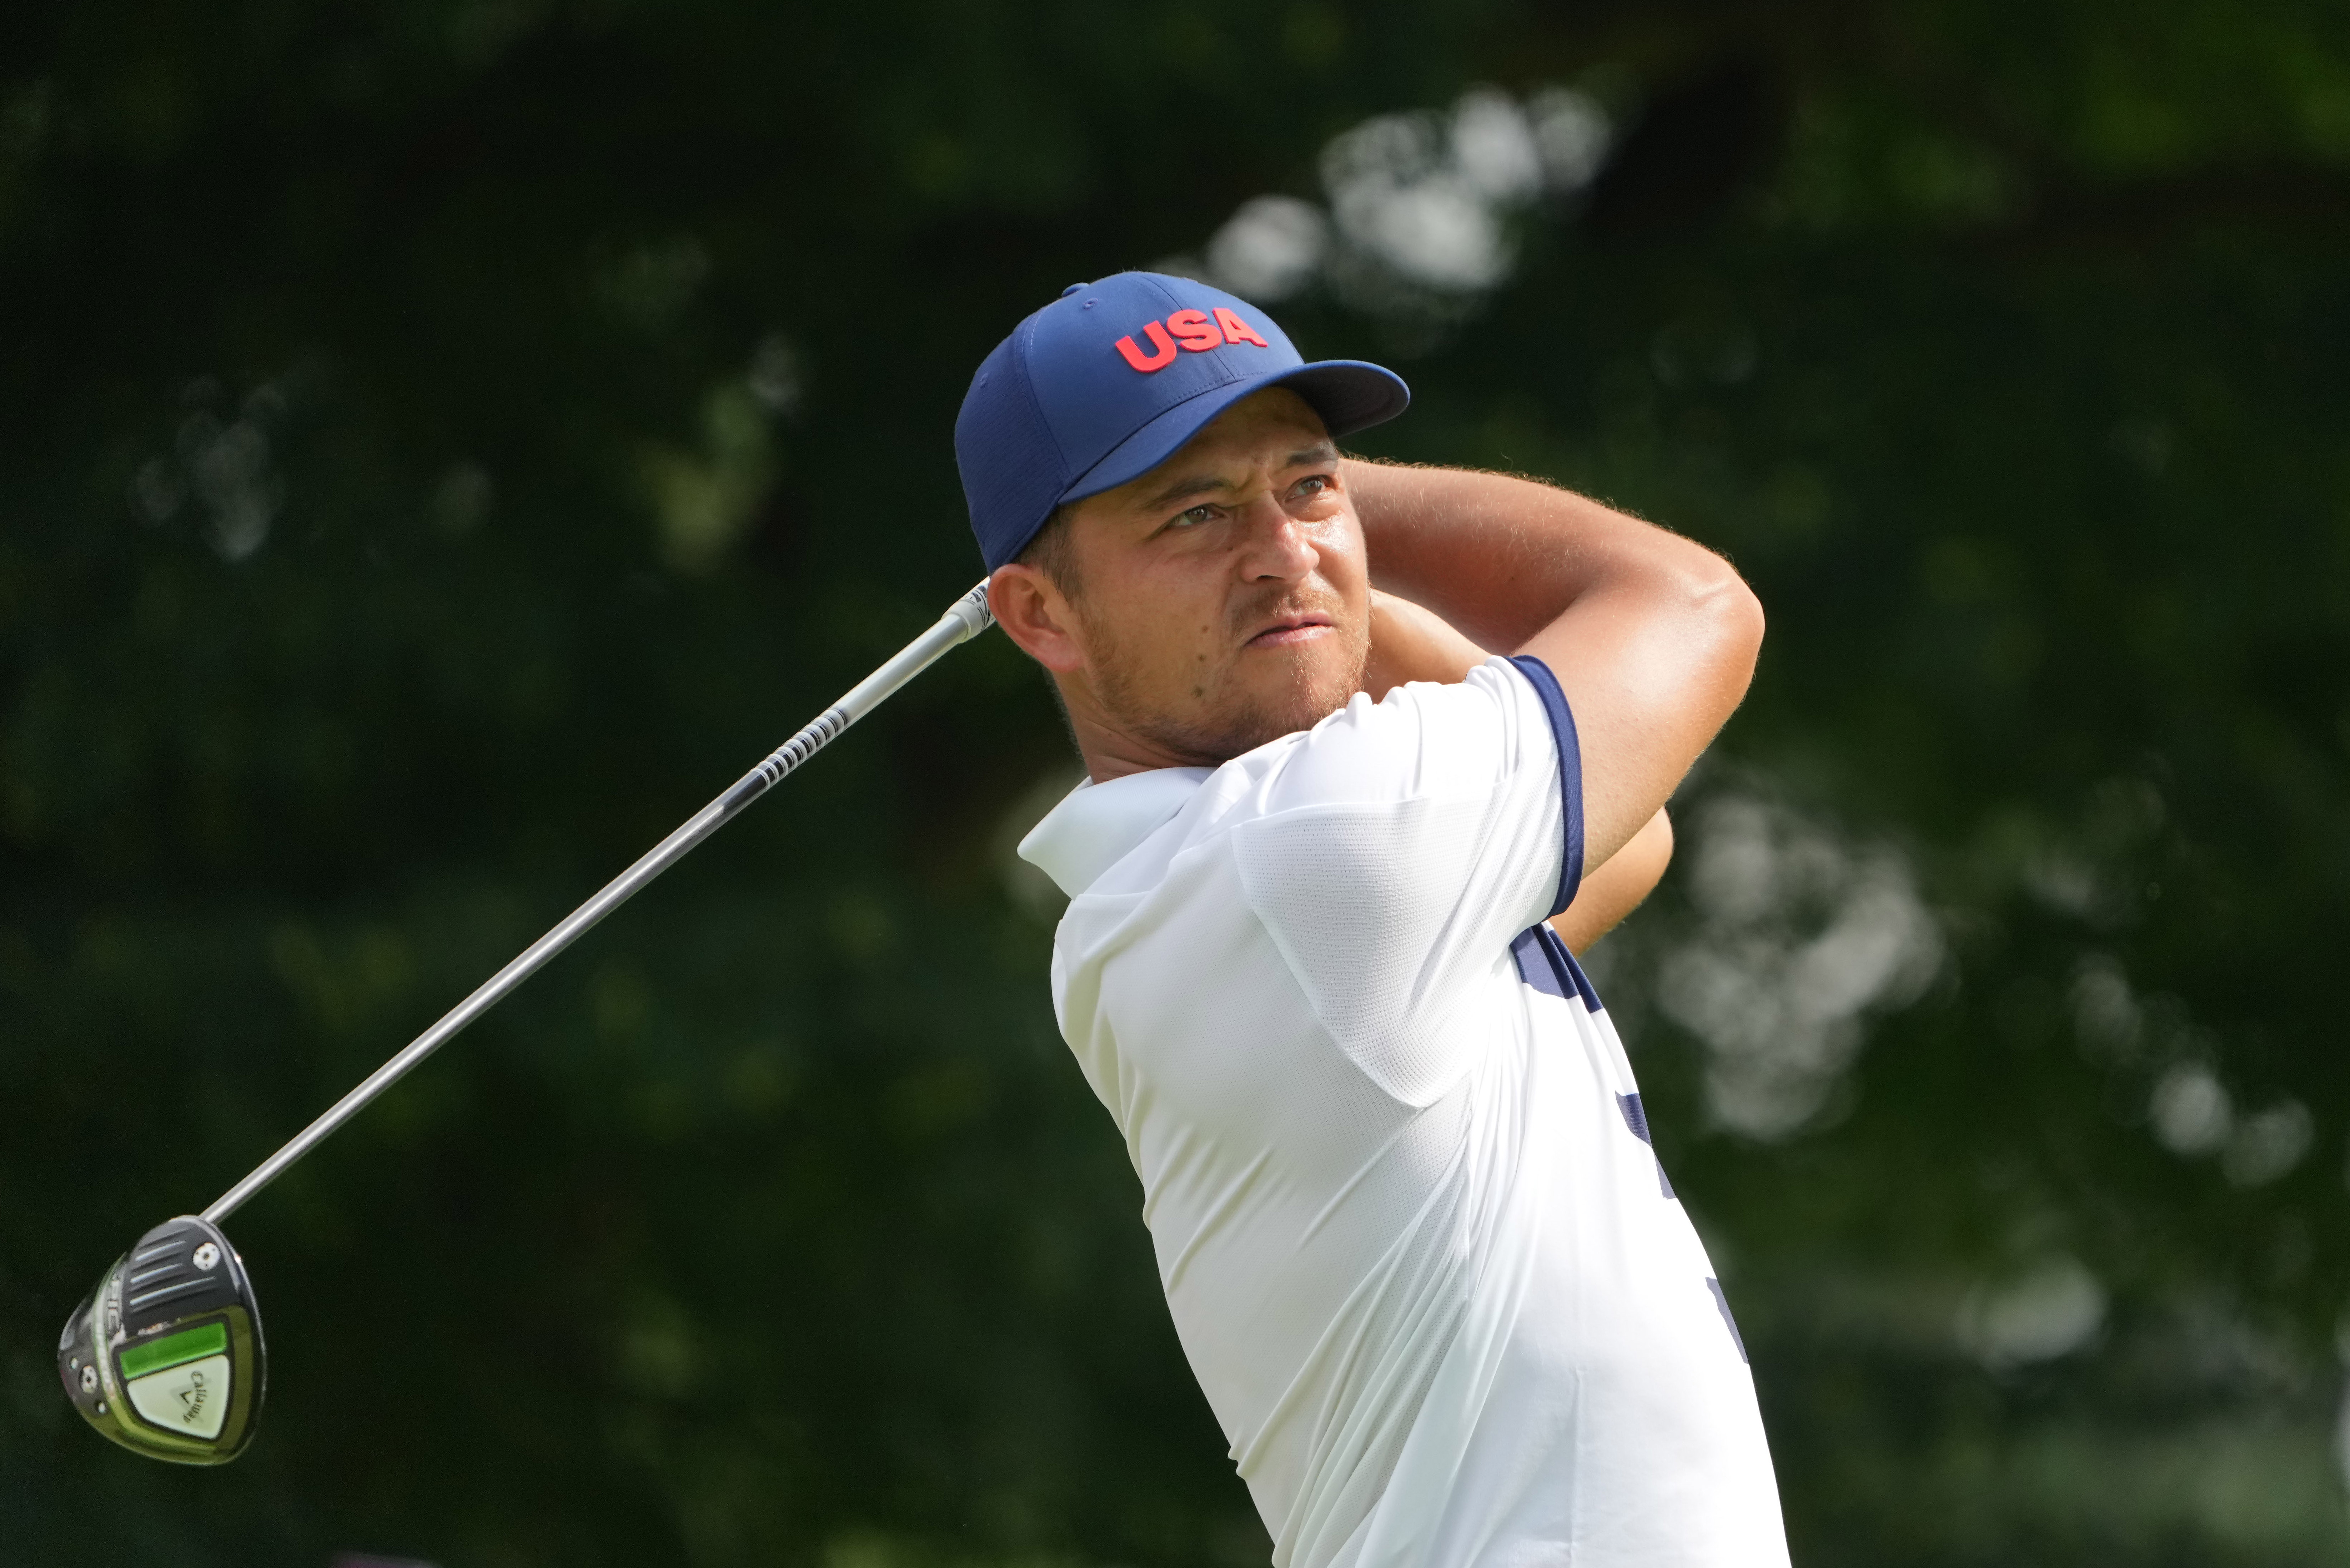 Xander Schauffele watches his tee shot on the third hole during round one of the men's individual stroke play of the Tokyo 2020 Olympic Summer Games at Kasumigaseki Country Club.